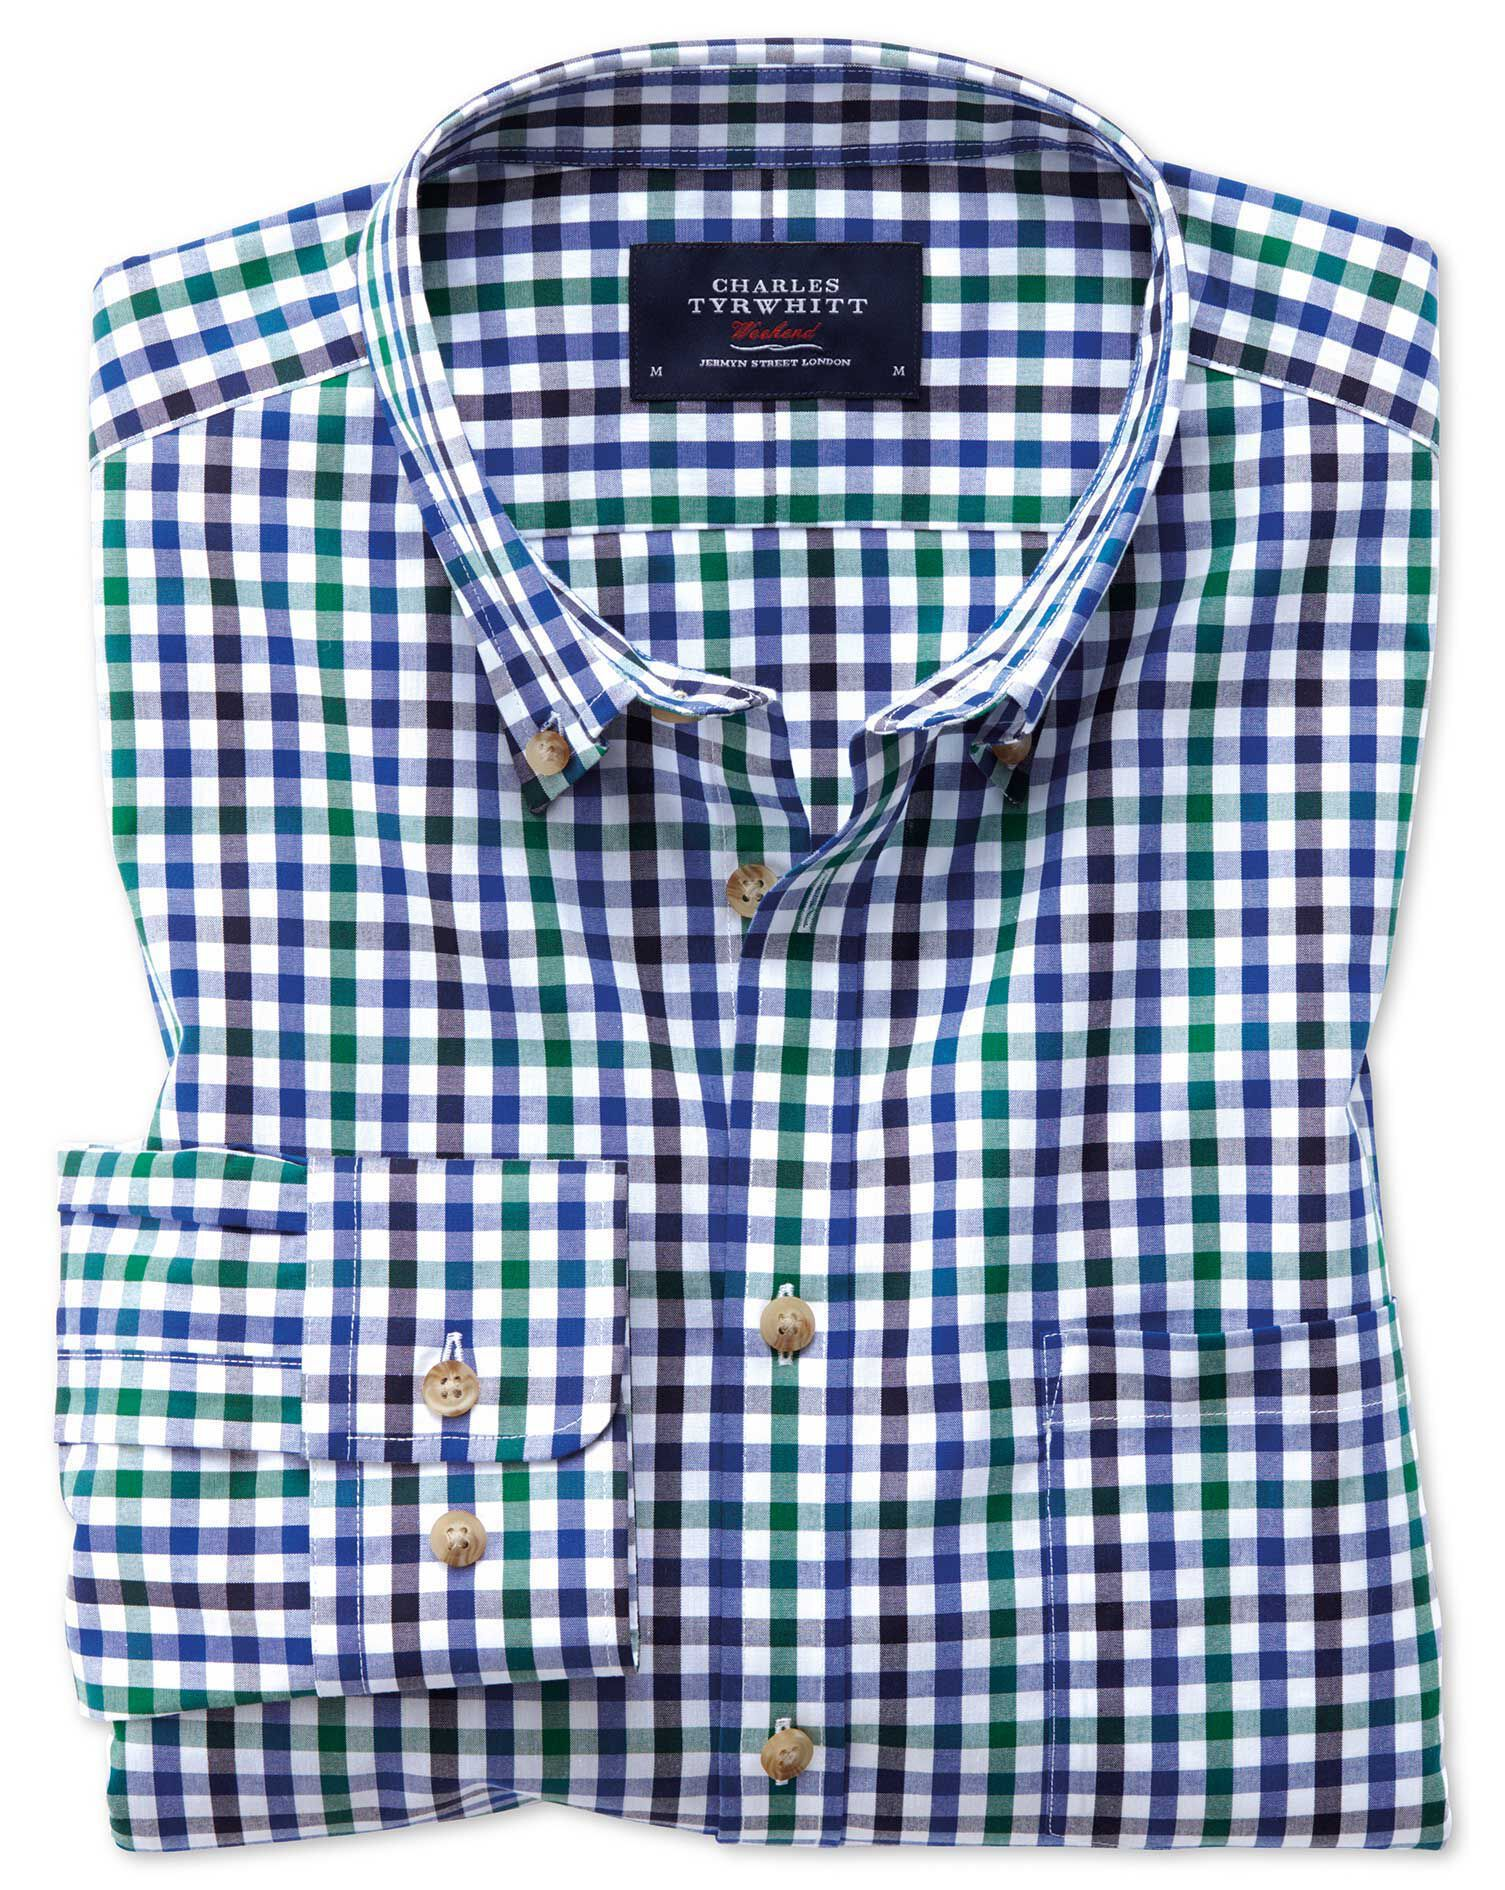 Classic Fit Button-Down Non-Iron Poplin Blue and Green Gingham Cotton Shirt Single Cuff Size XL by C